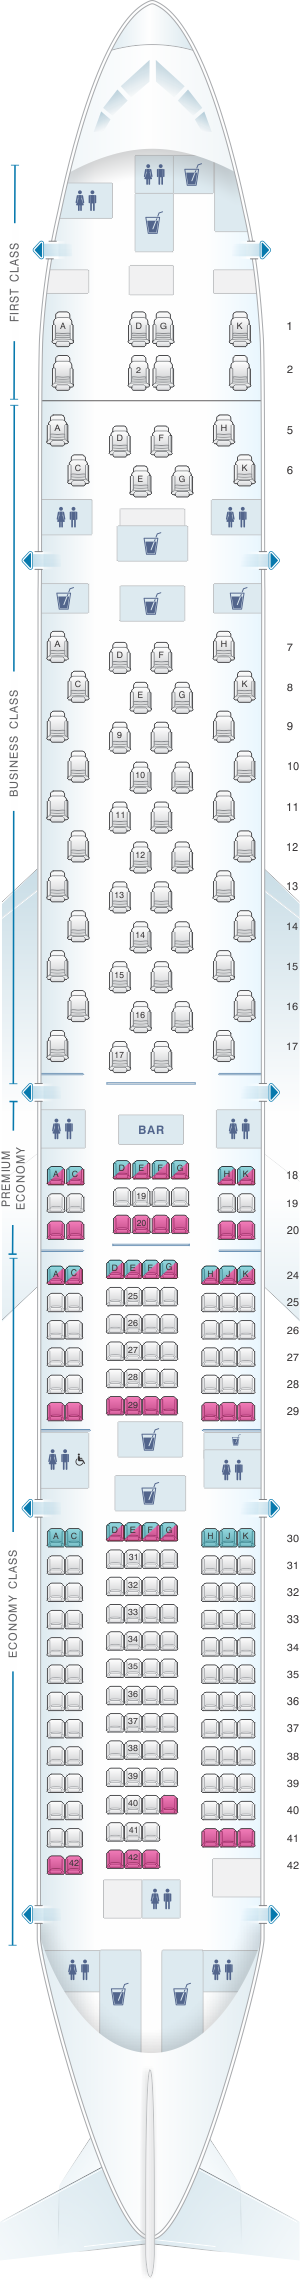 Seat map for ANA - All Nippon Airways Boeing B777 300ER 250pax